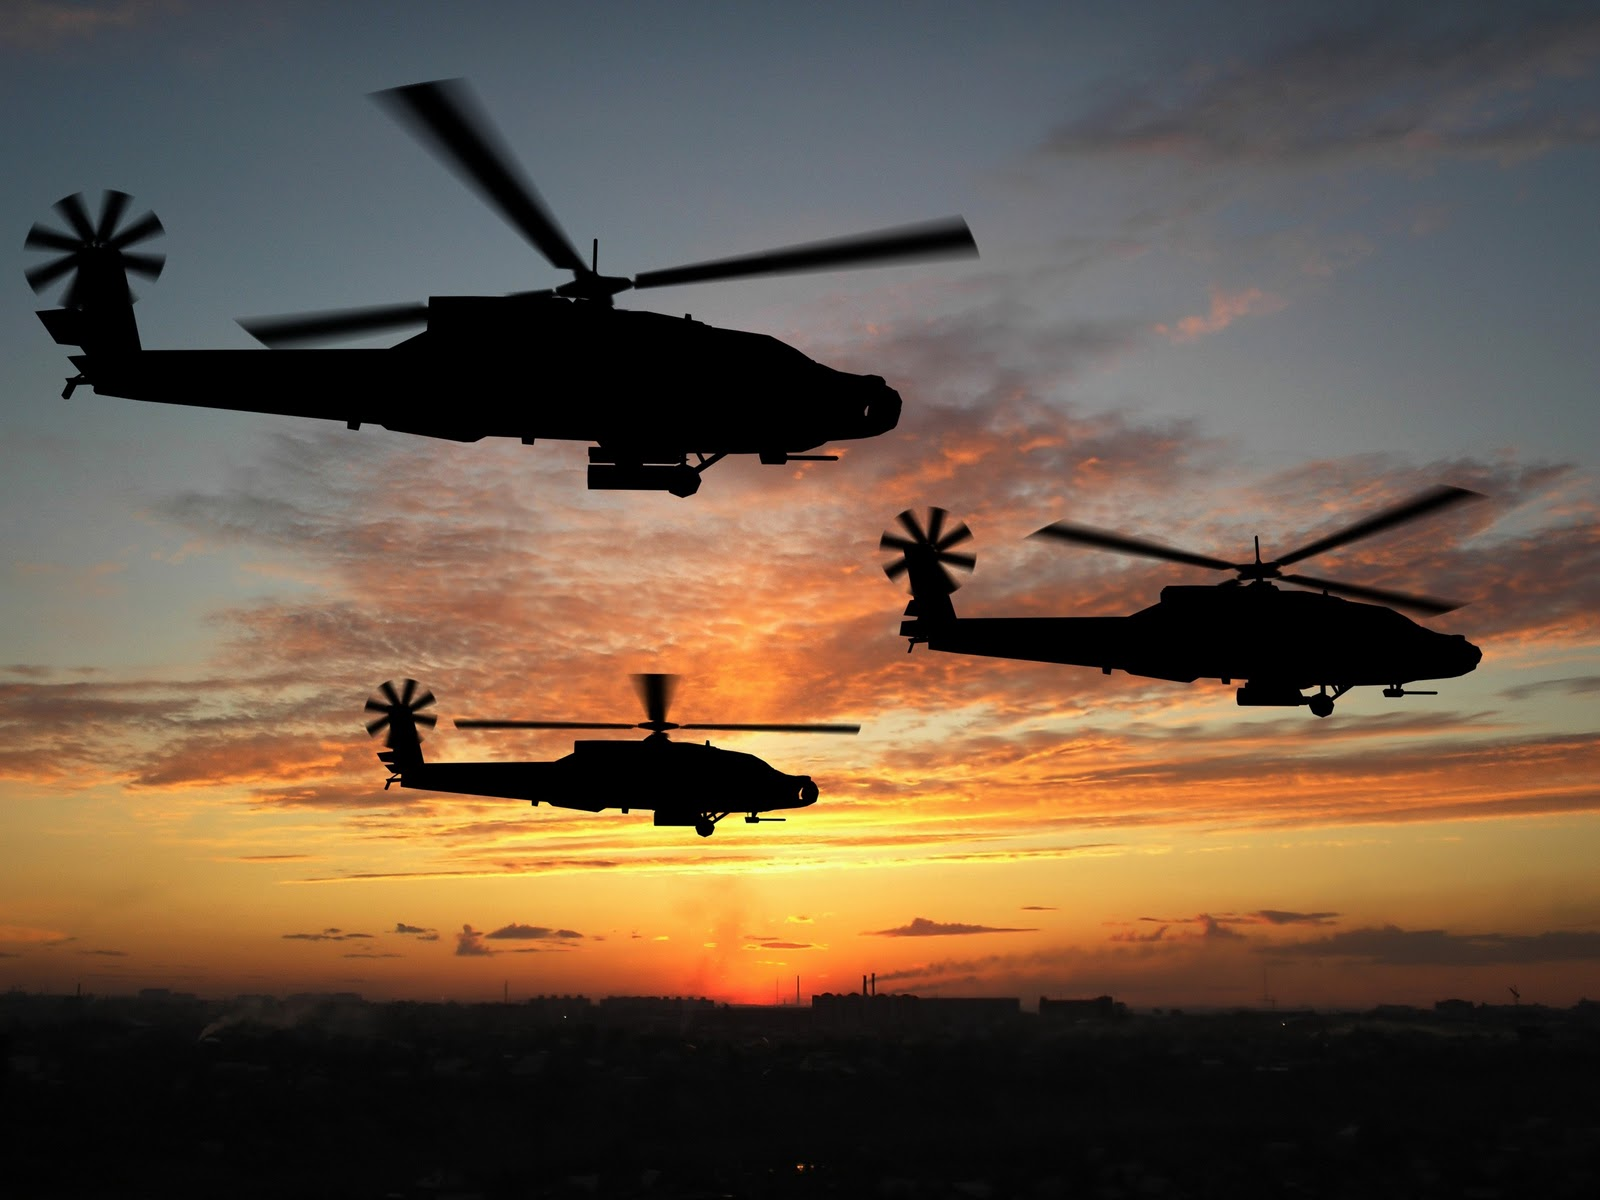 Apache Helicopters Sunset HD Wallpapers Desktop Wallpapers 1600x1200